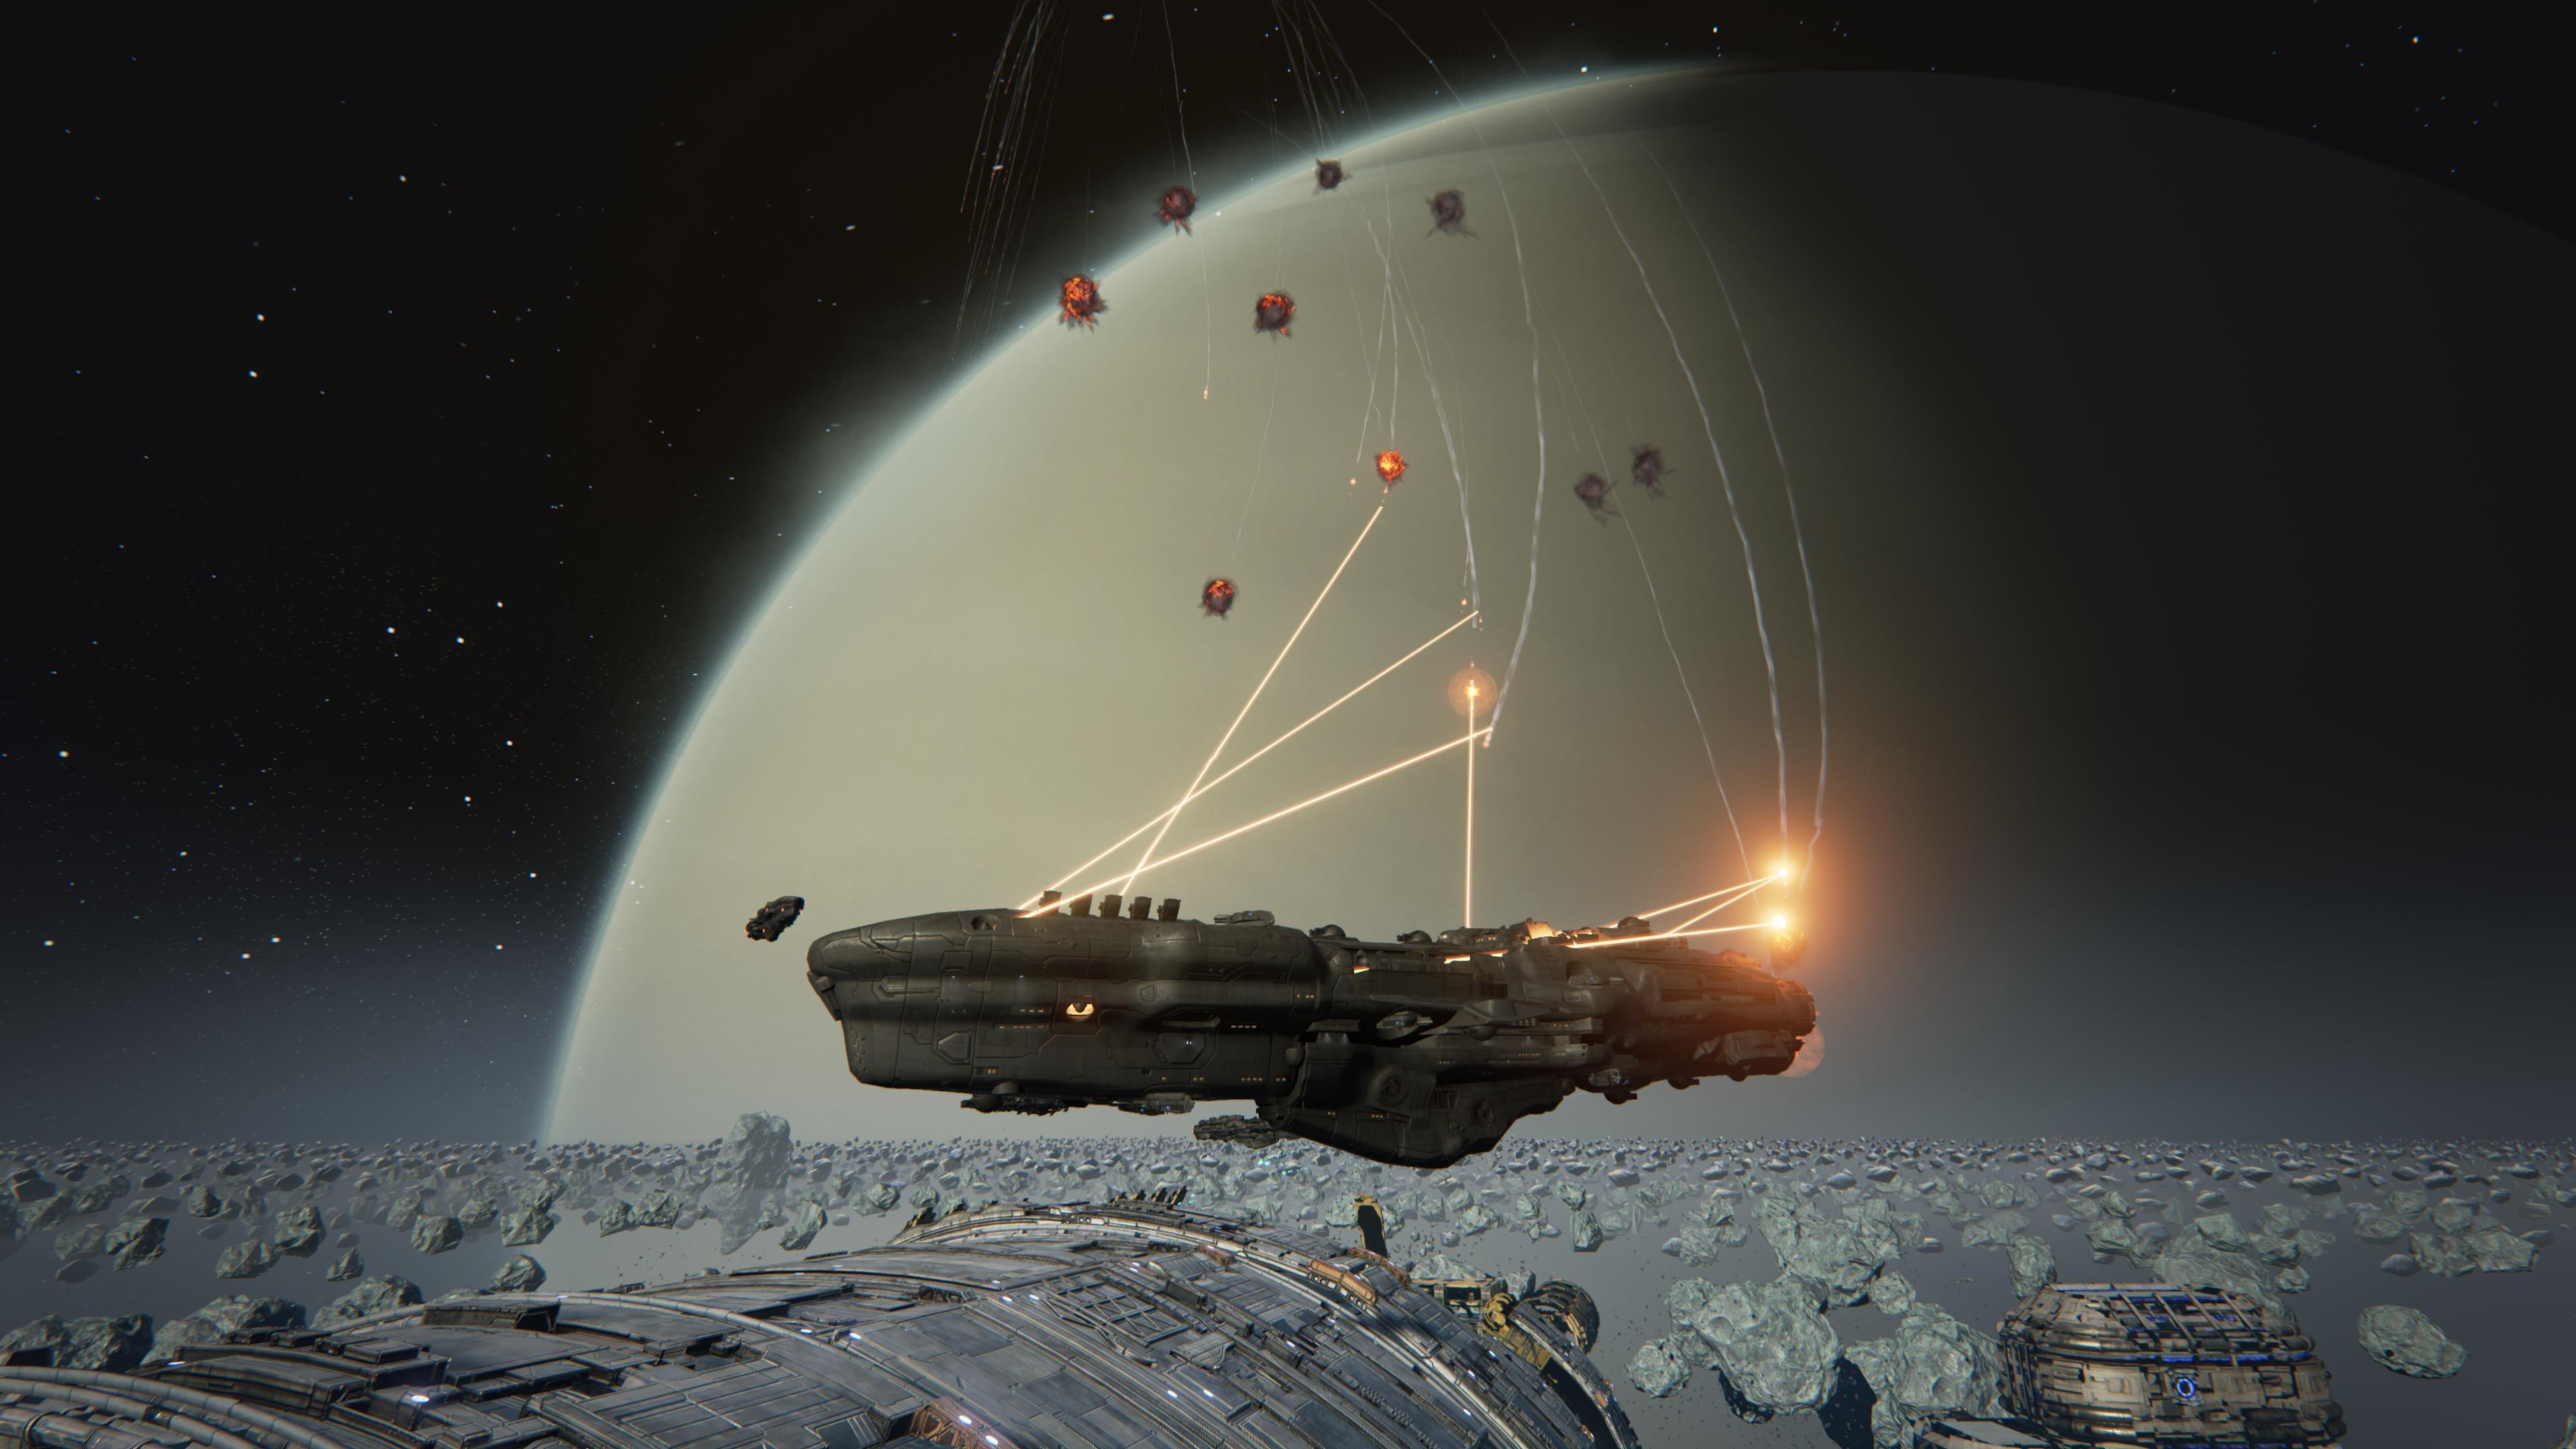 Raketenabwehrsystem in Dreadnought